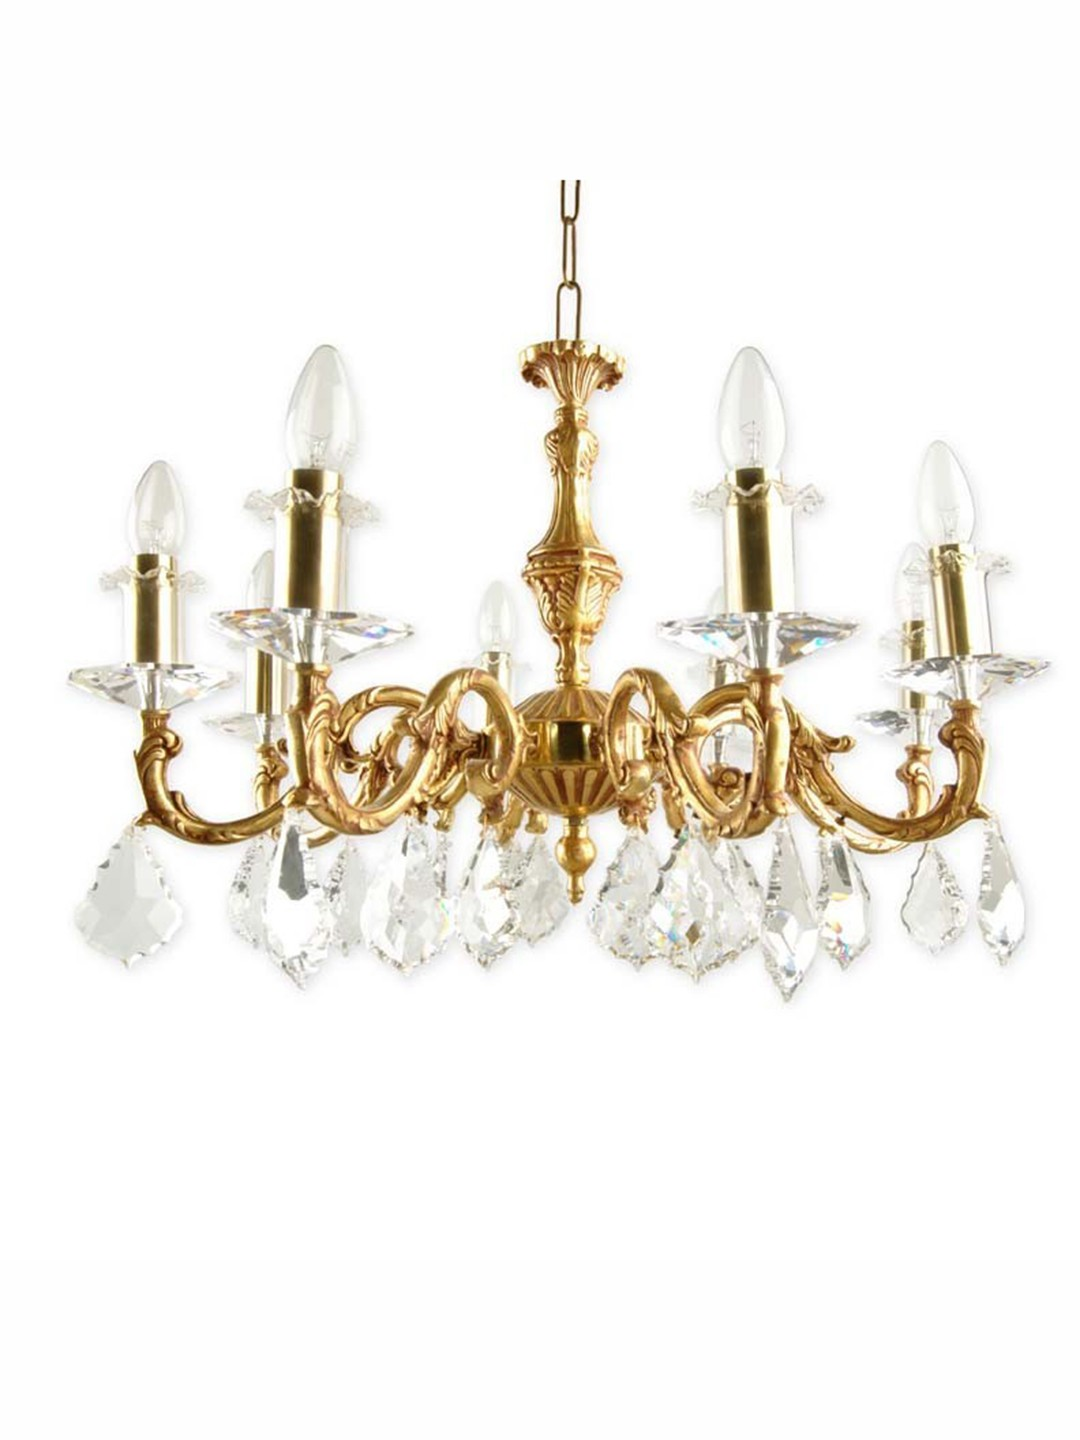 SP Crystal & Brass 8 Light Candle Chandelier